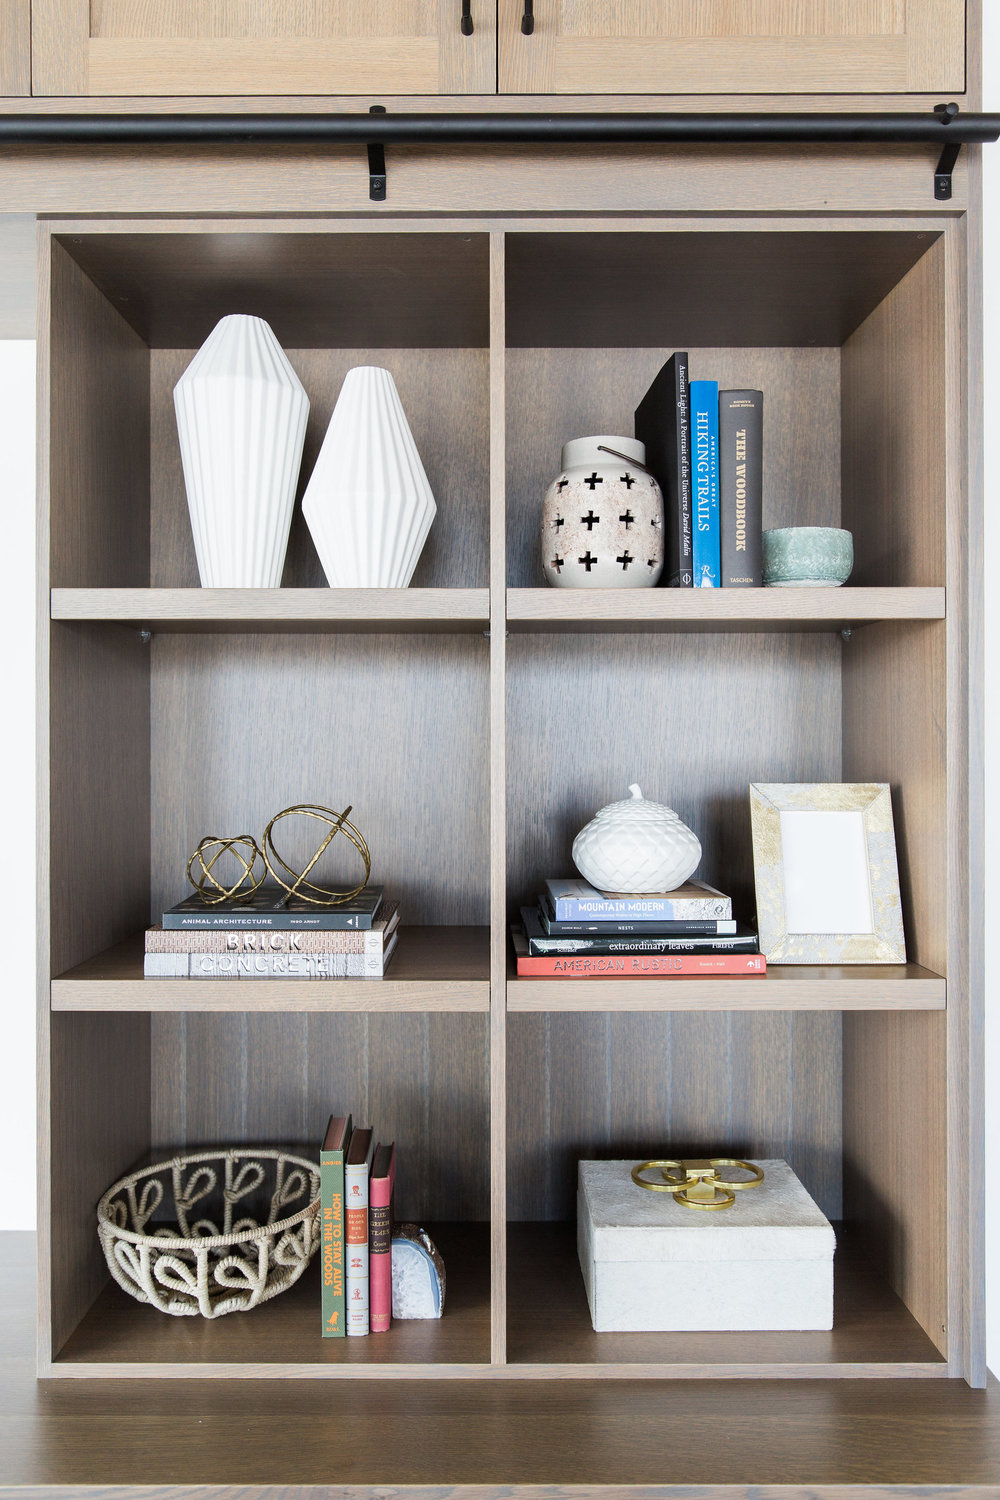 Decorative details on wooden shelving unit